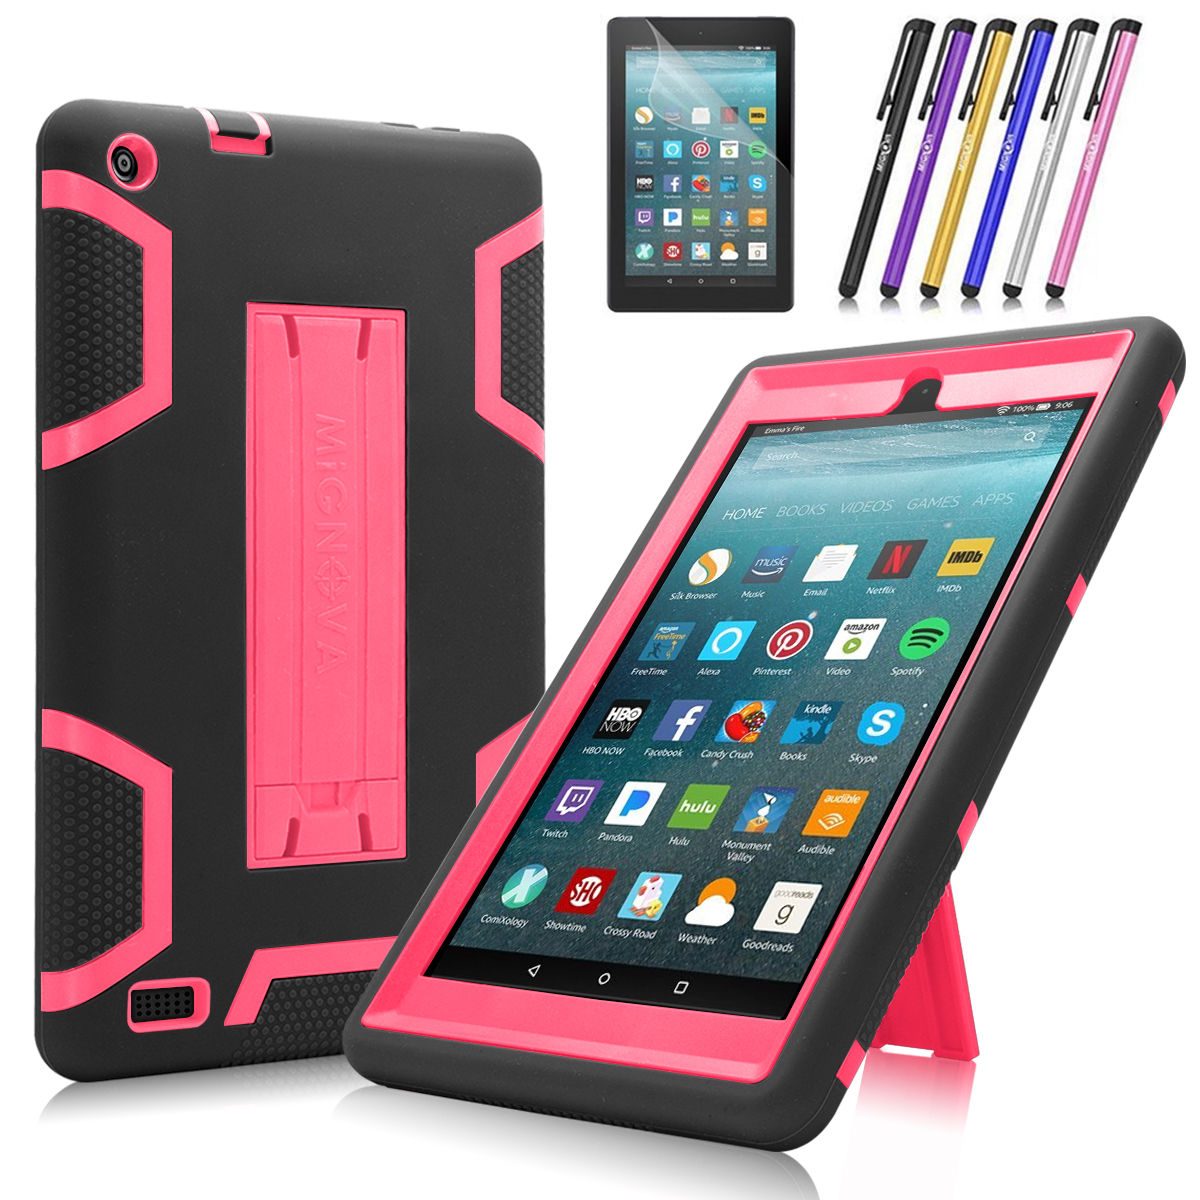 Fire 7 2017 Case, Mignova Heavy Duty Hybrid Protective Case Build In Kickstand For All-New Fire 7 Tablet (7th Generation 2017 Release) + Screen Protector Film and Stylus Pen (Black / Black)